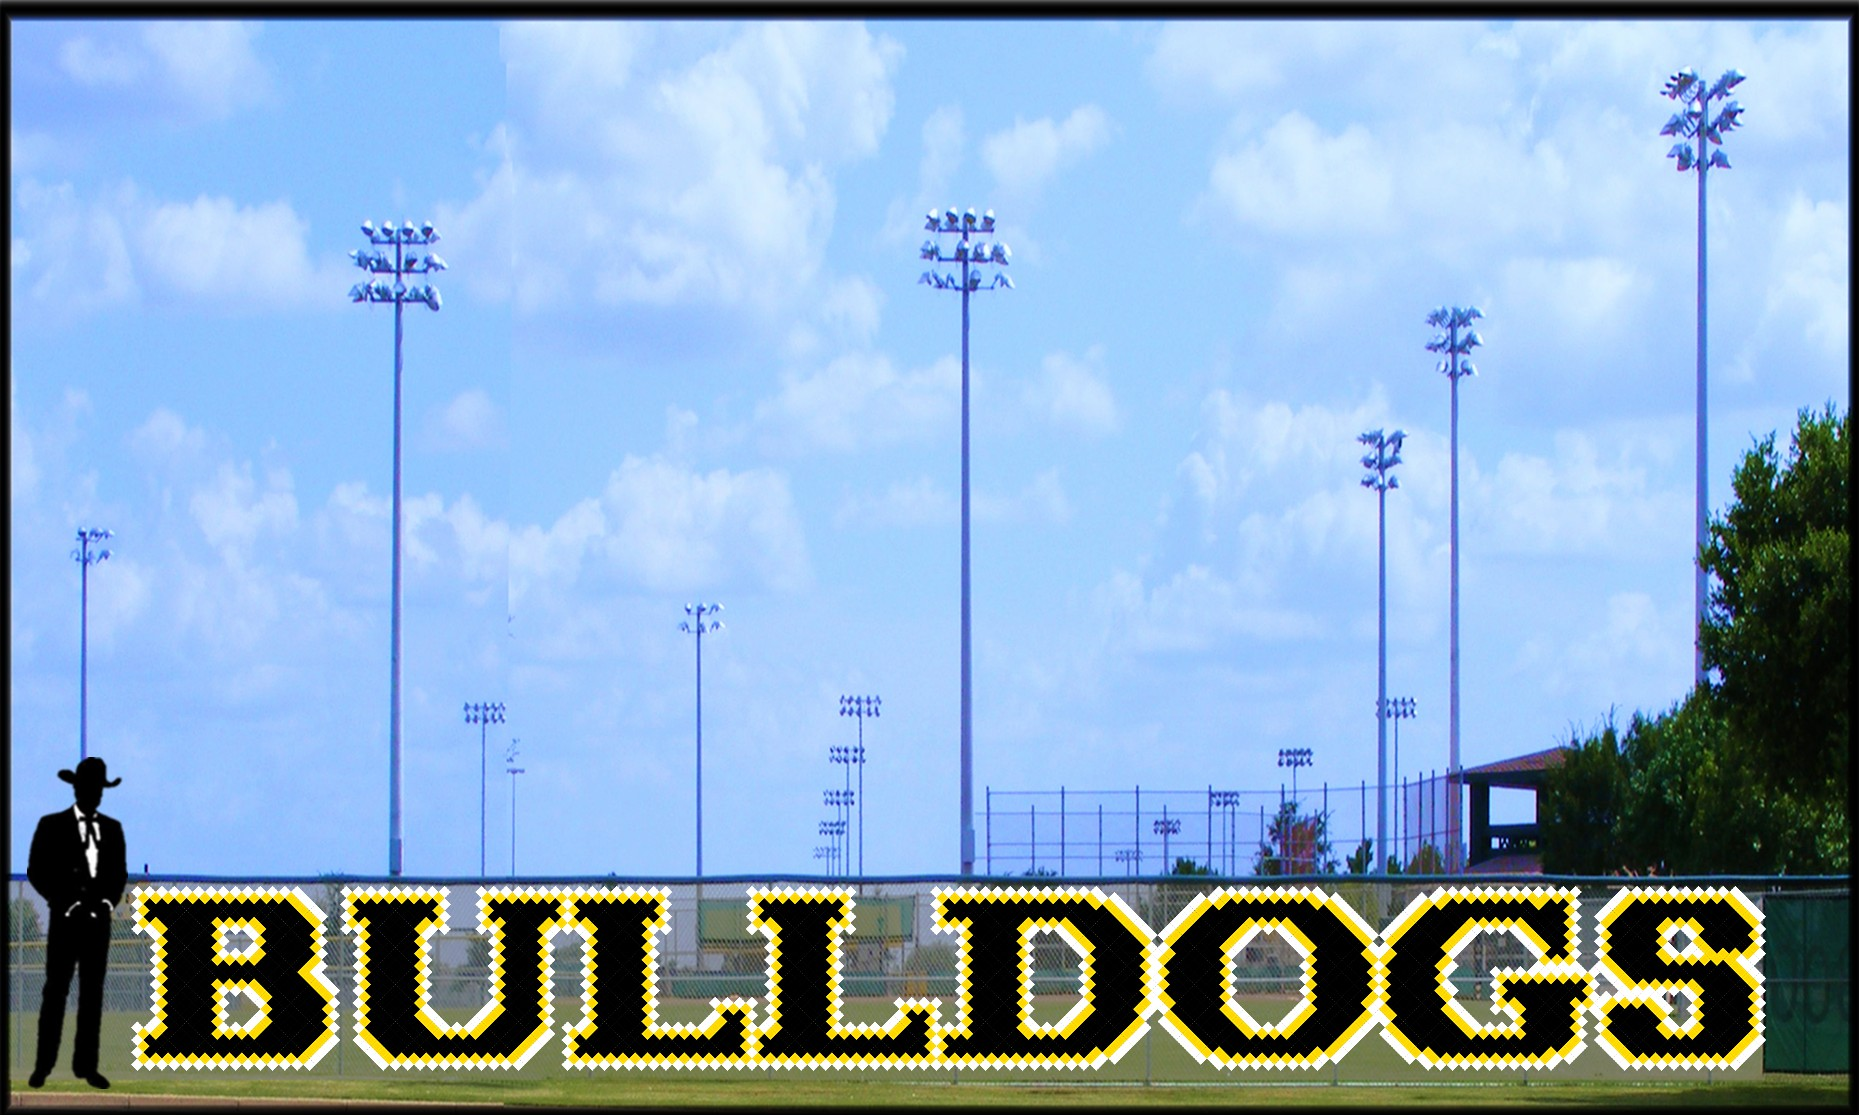 4' x 40 Bulldogs Letters